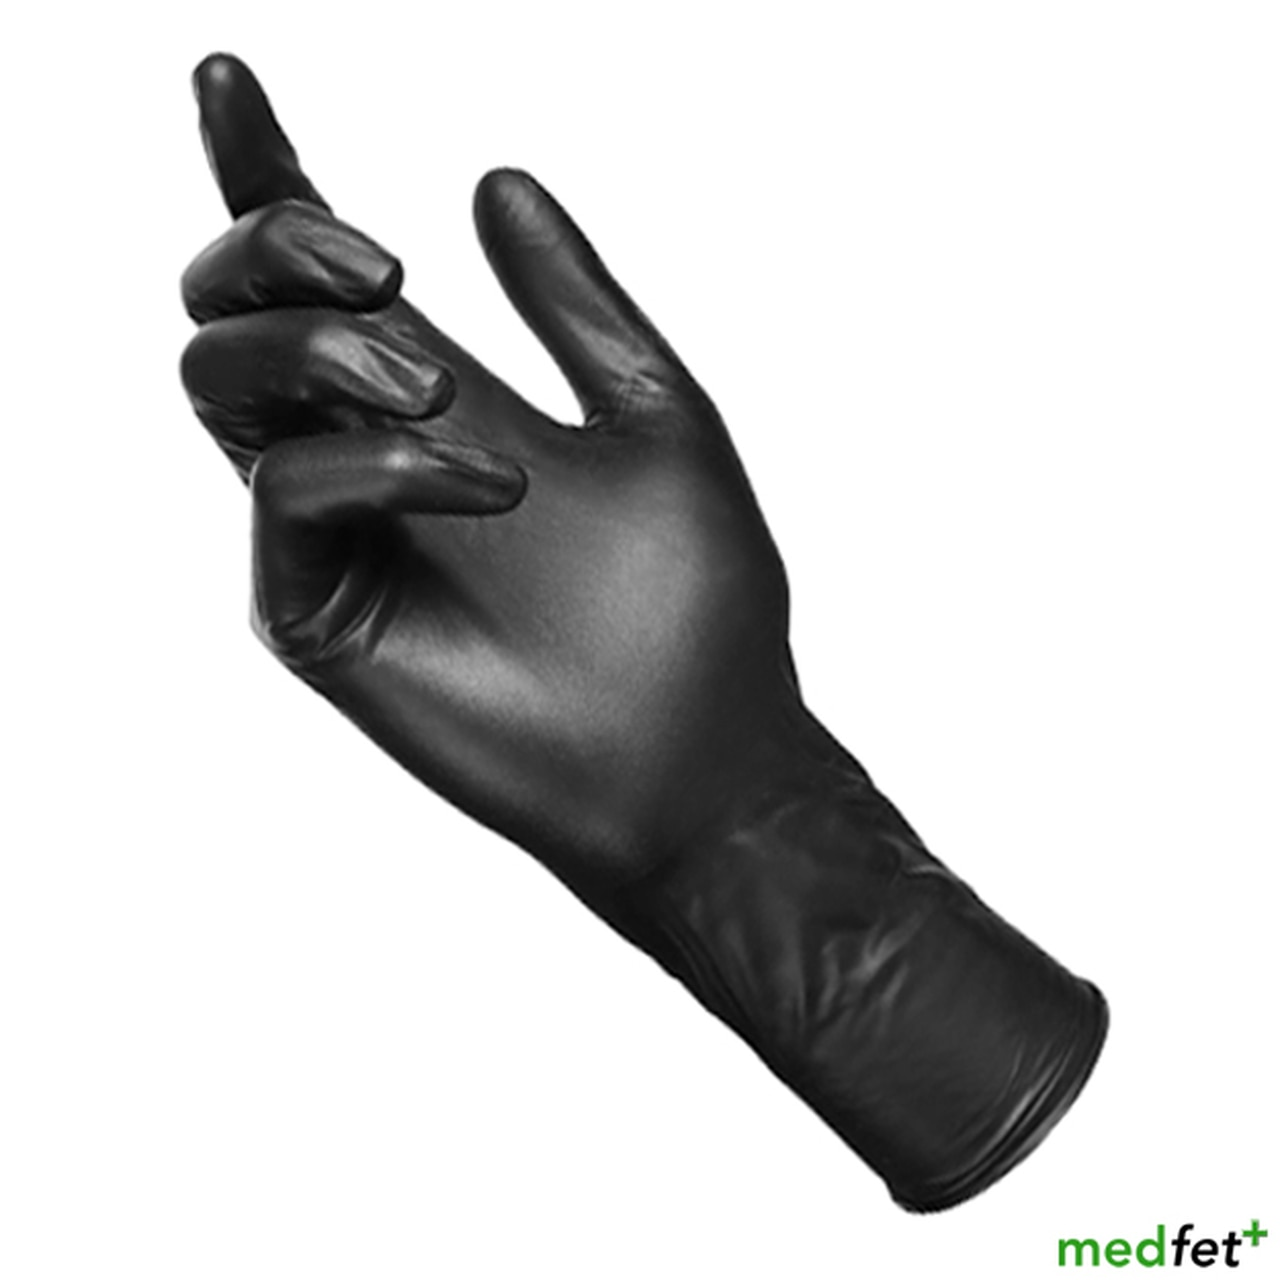 surgical gloves